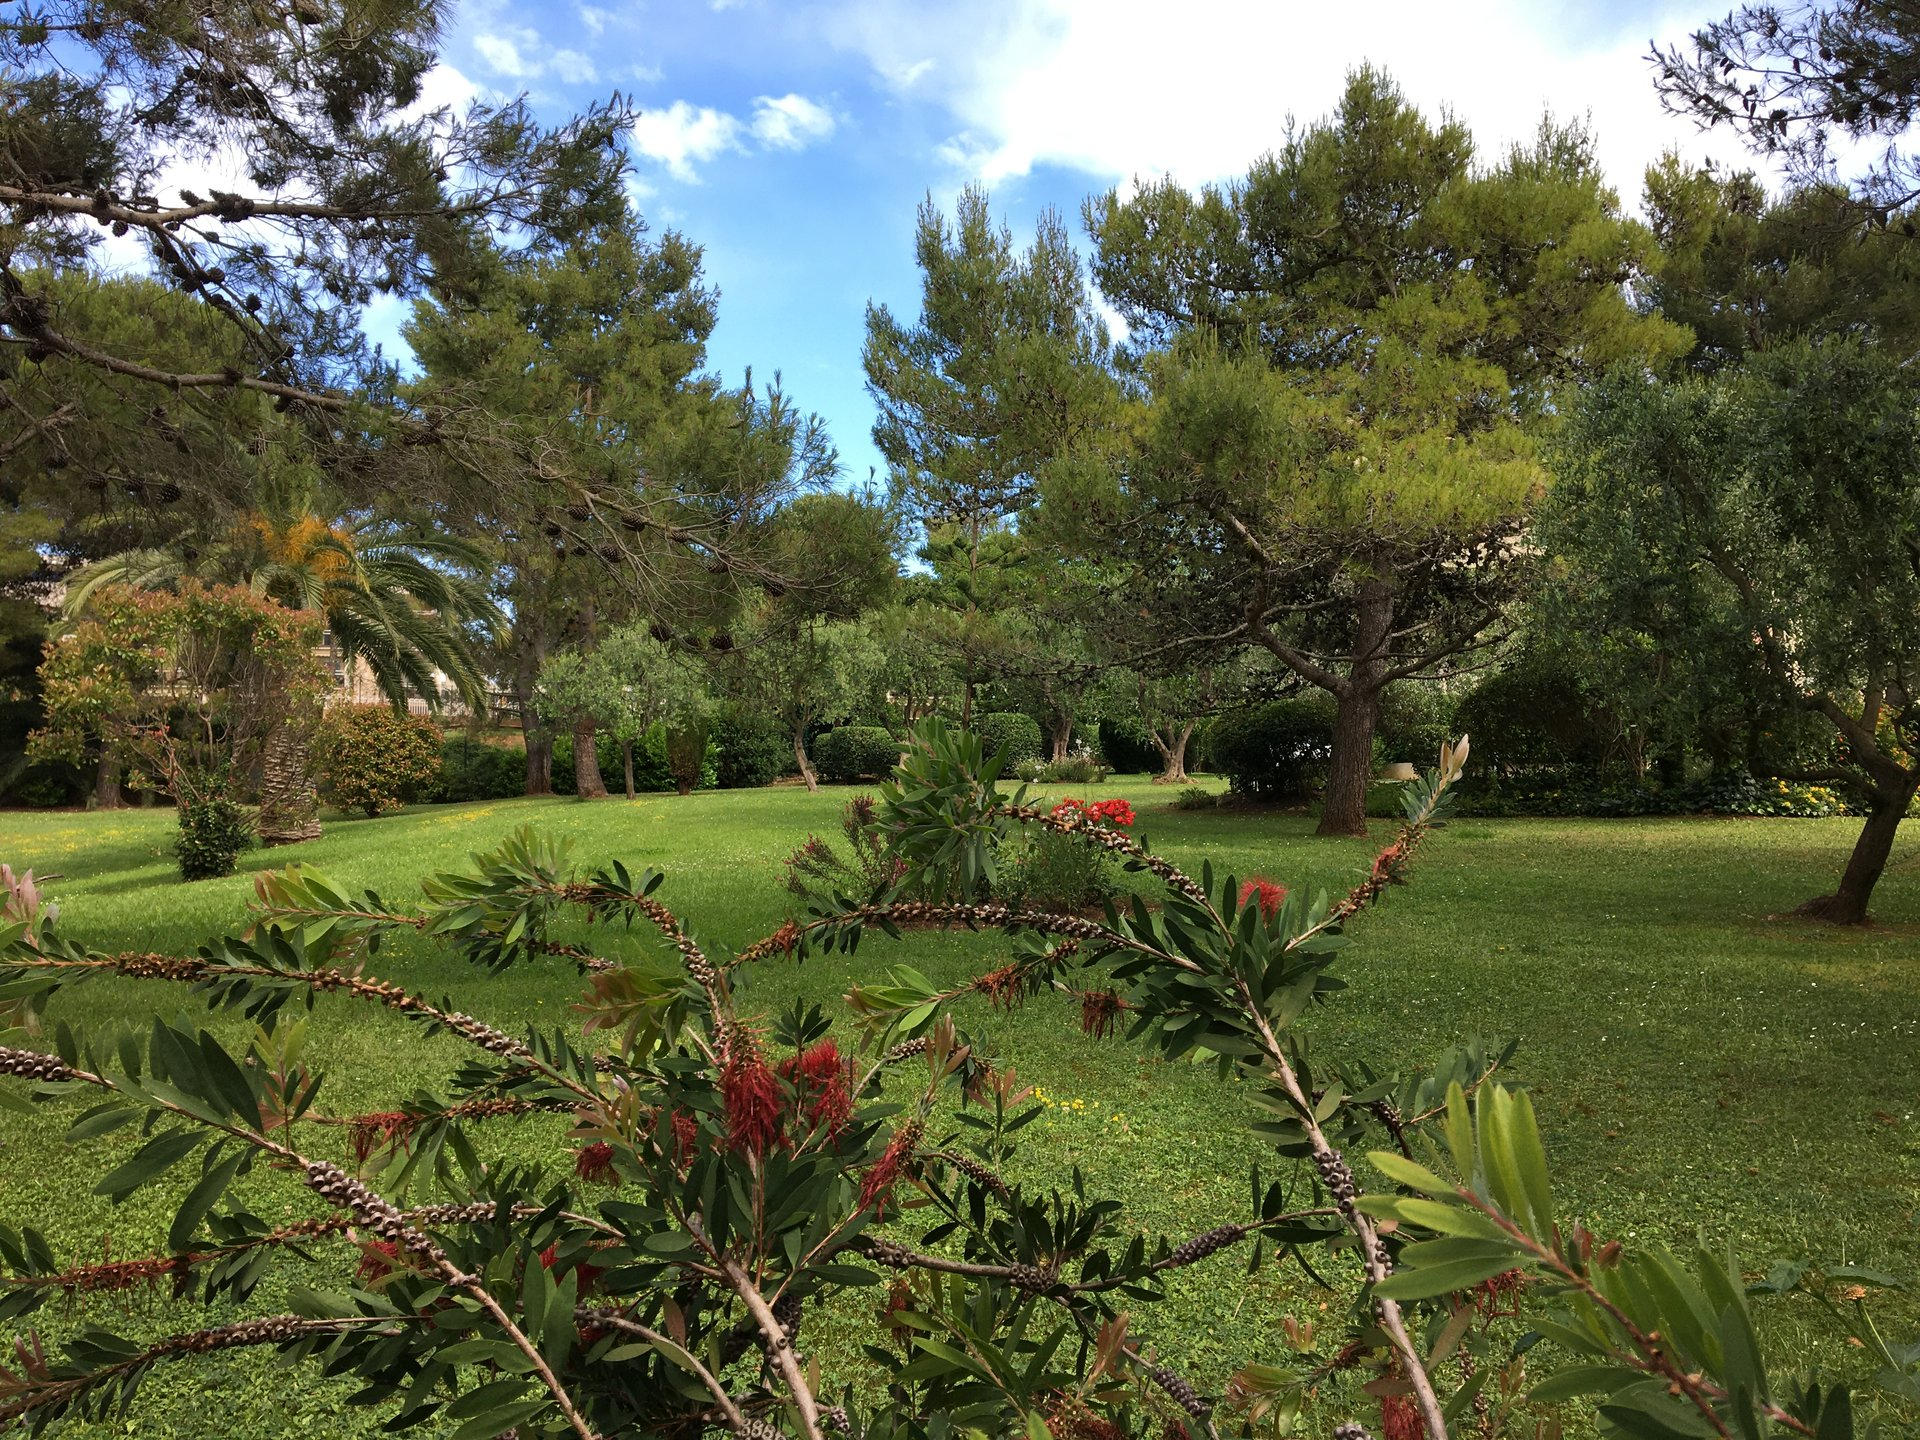 ANTIBES LES COMBES